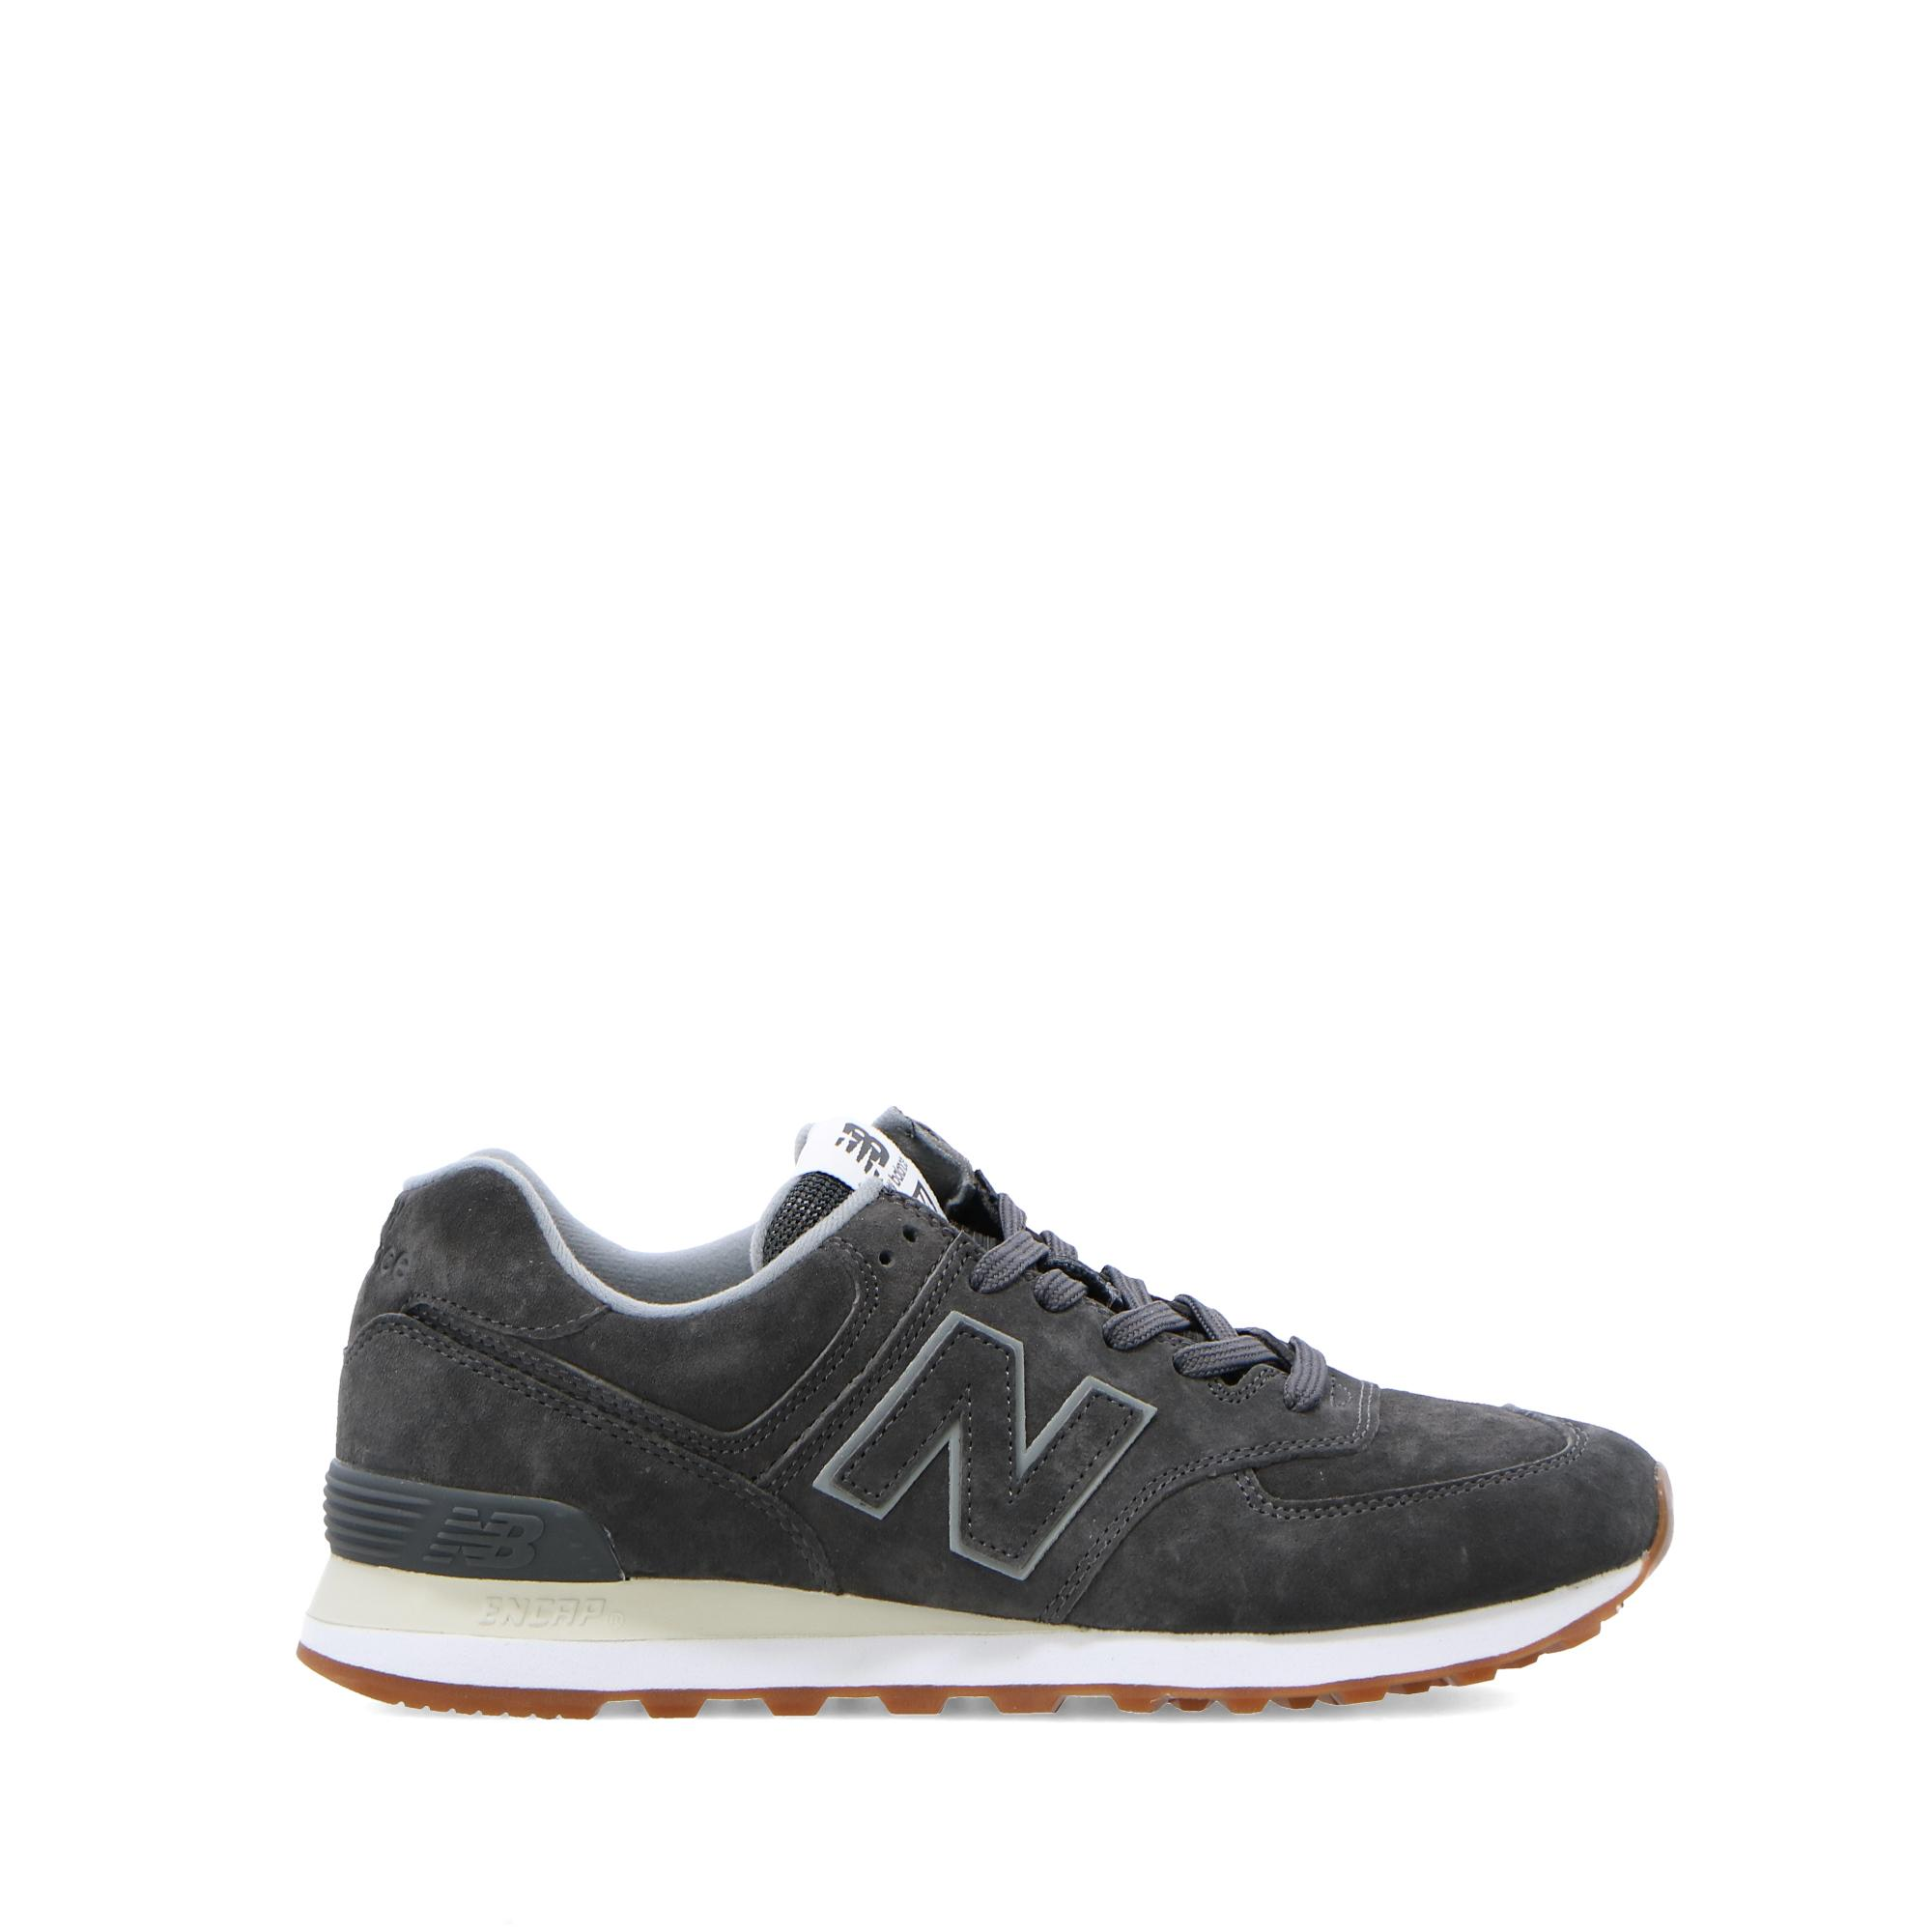 New Balance 574 Castlerock grey